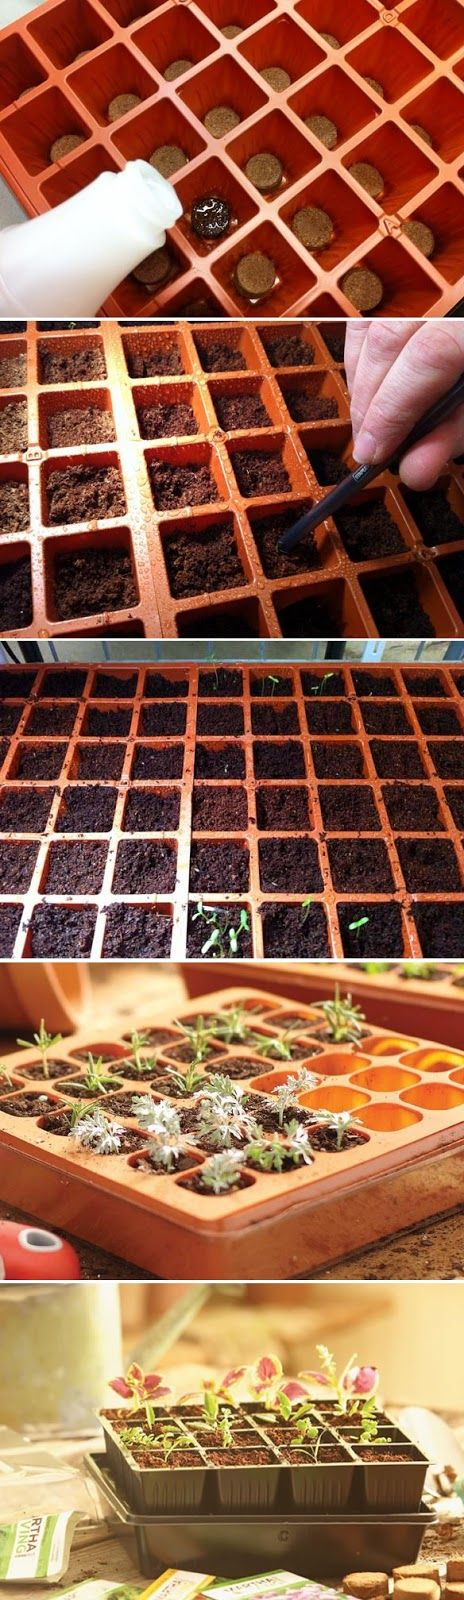 Start Seeds at Home with a Seed Starter Kit. Easily done DIY seed starting